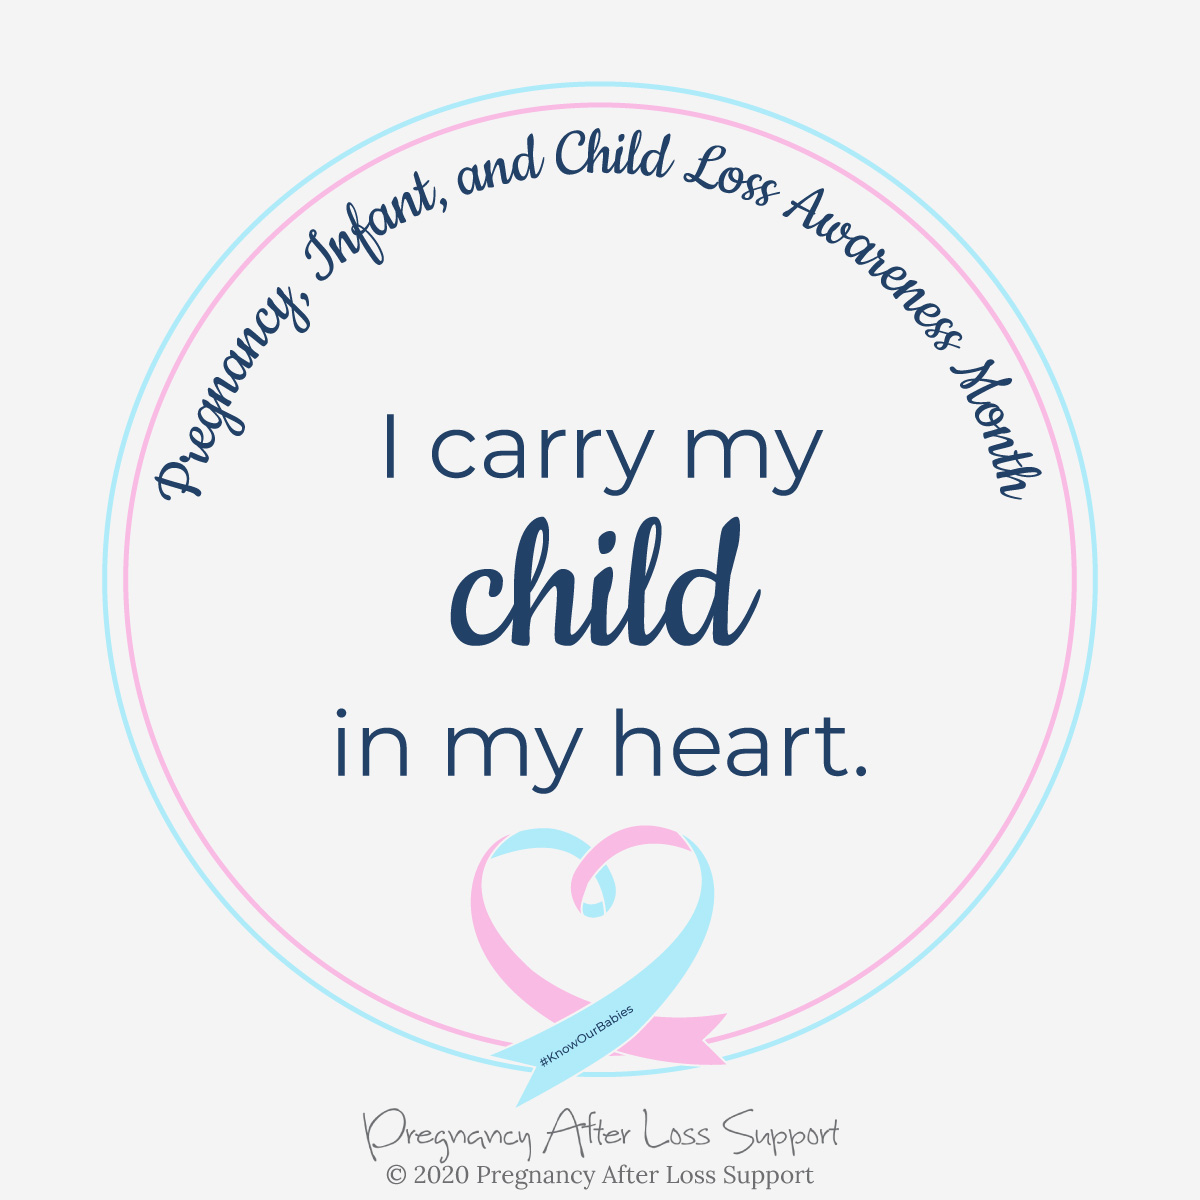 I carry my child in my heart - Pregnancy, Infant, and Child Loss Awareness Month